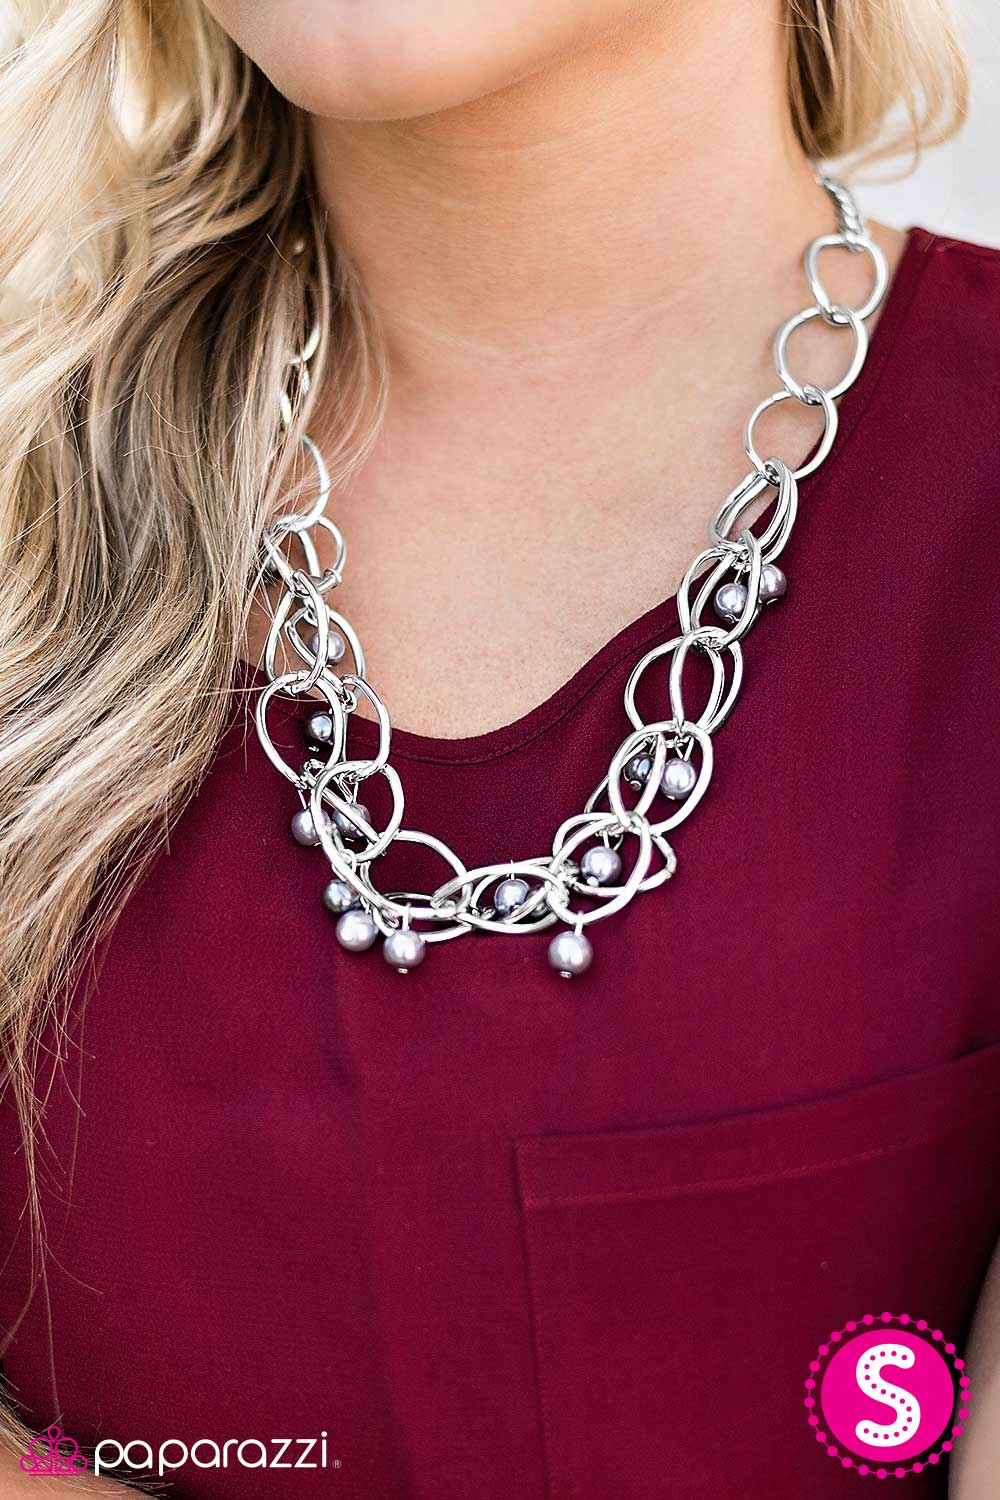 Season Premiere - Silver - Paparazzi necklace